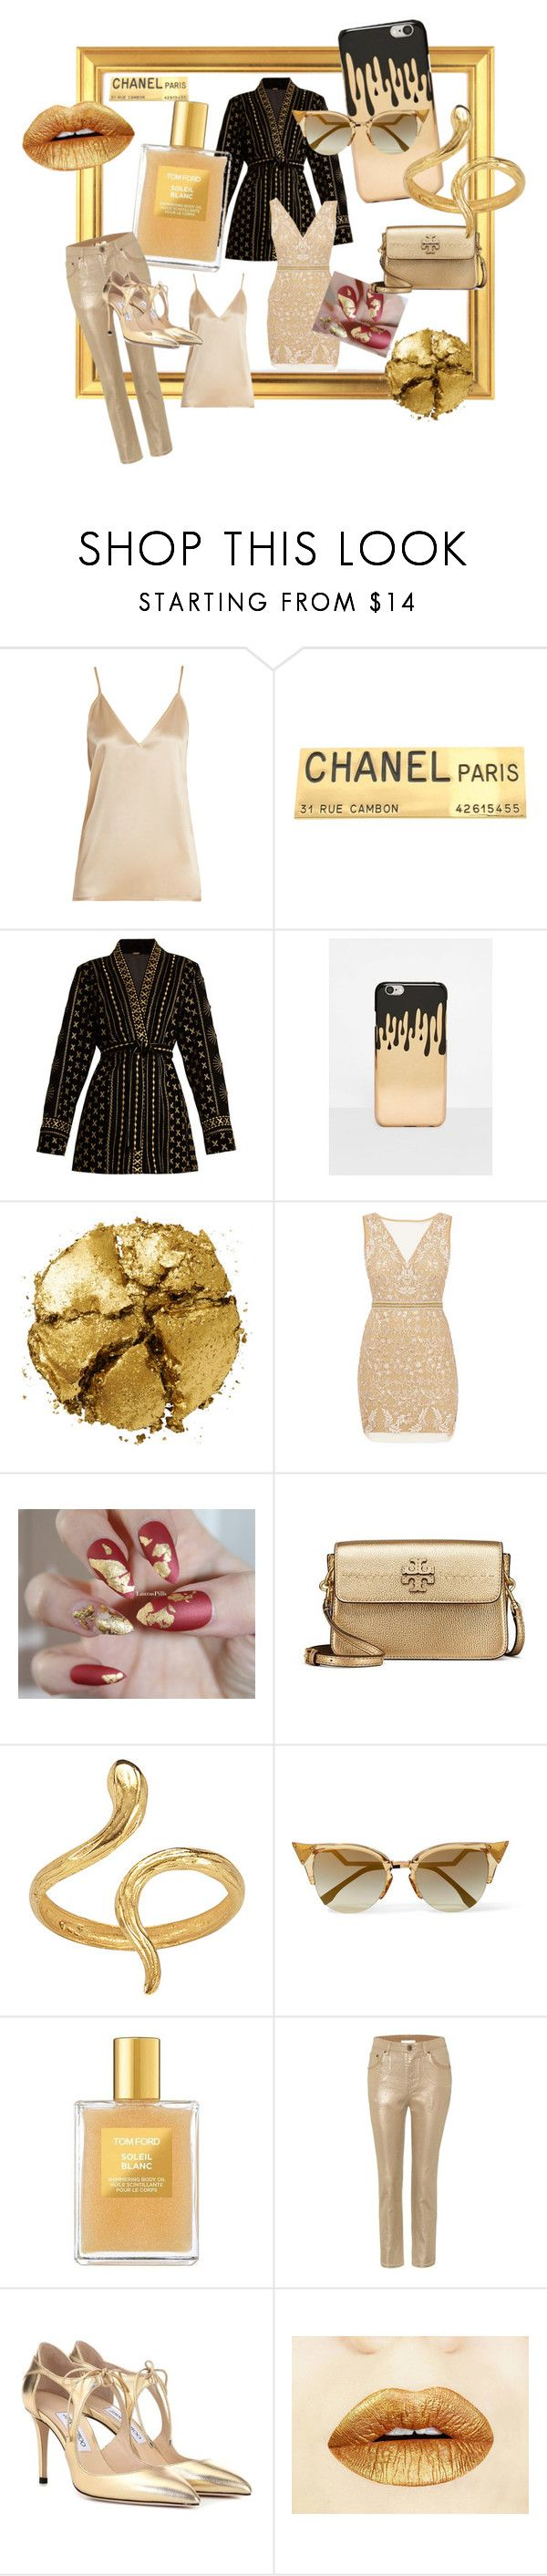 """""""gilded"""" by stephanie-frakes ❤ liked on Polyvore featuring Raey, Chanel, Dodo Bar Or, Missguided, Pat McGrath, Nicole Miller, Tory Burch, Madina Visconti di Modrone, Fendi and Tom Ford"""